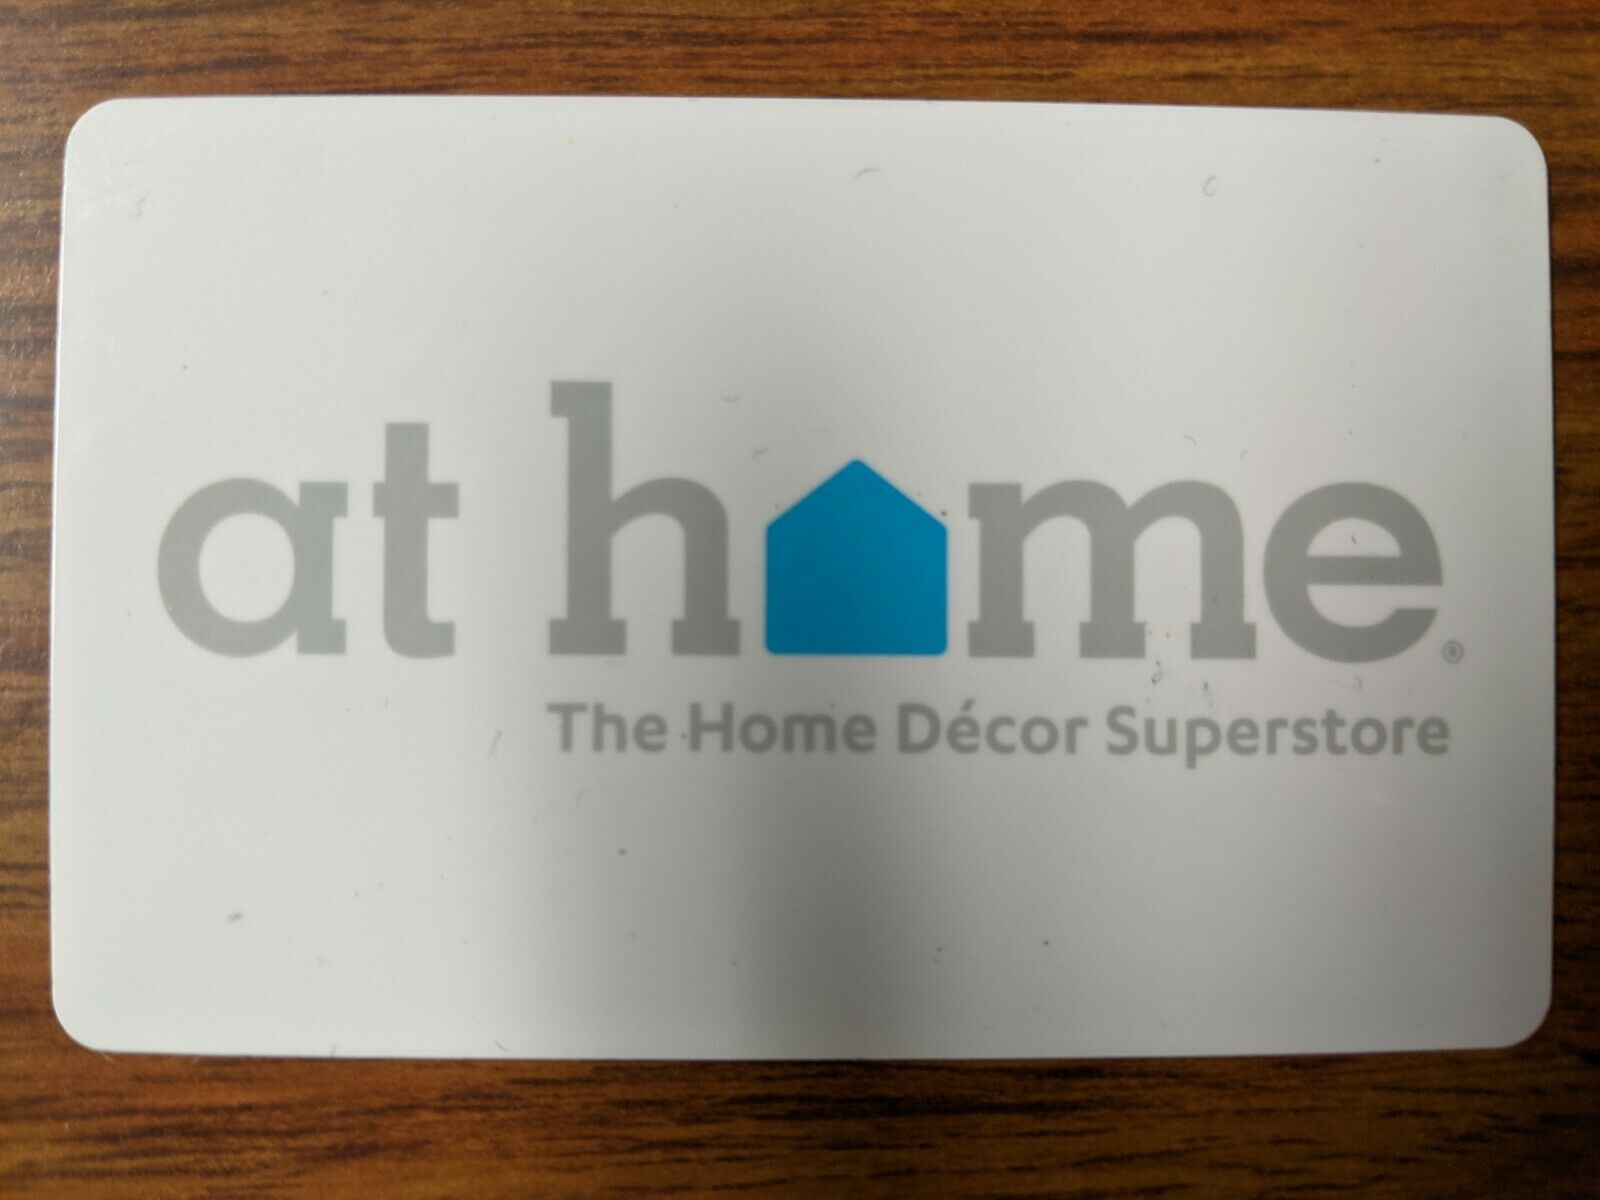 235.00 At Home Gift Card Merchandise Credit BALANCE 235.00 - $200.00